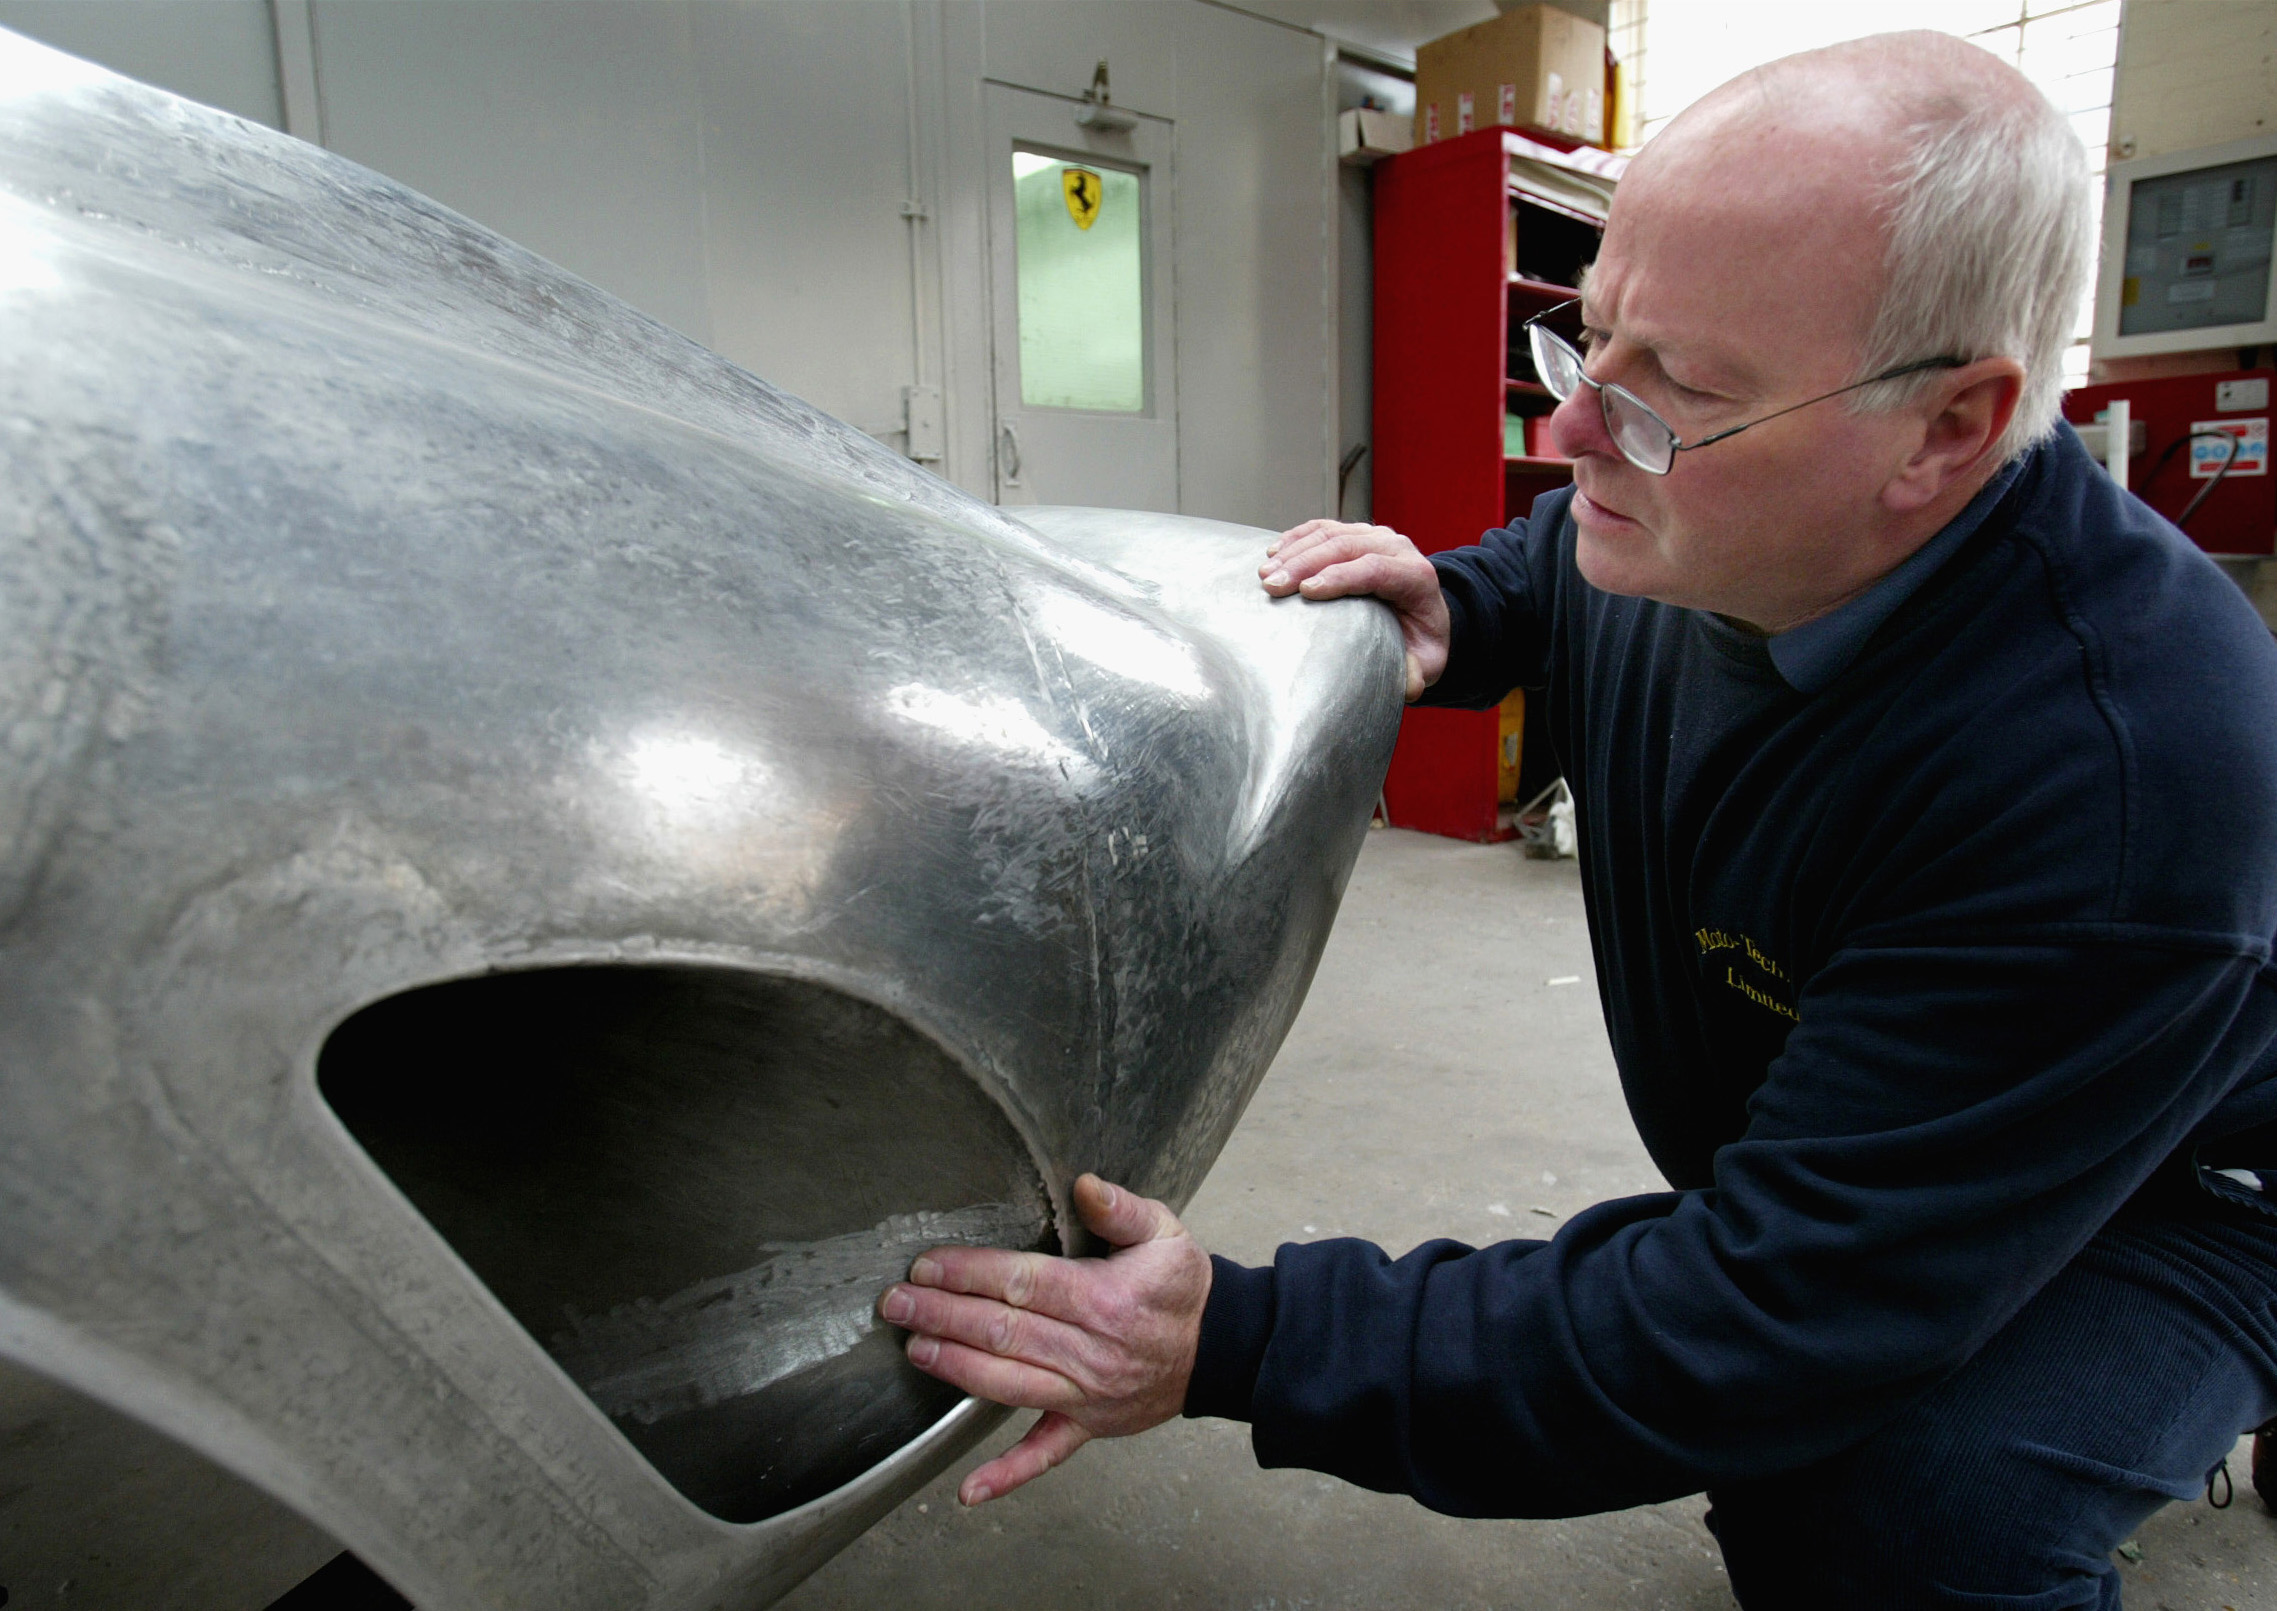 Ferrari 250 GTO. A Perfect tail end repair gets the quality control seal of approval by Kevin O'Rourke.